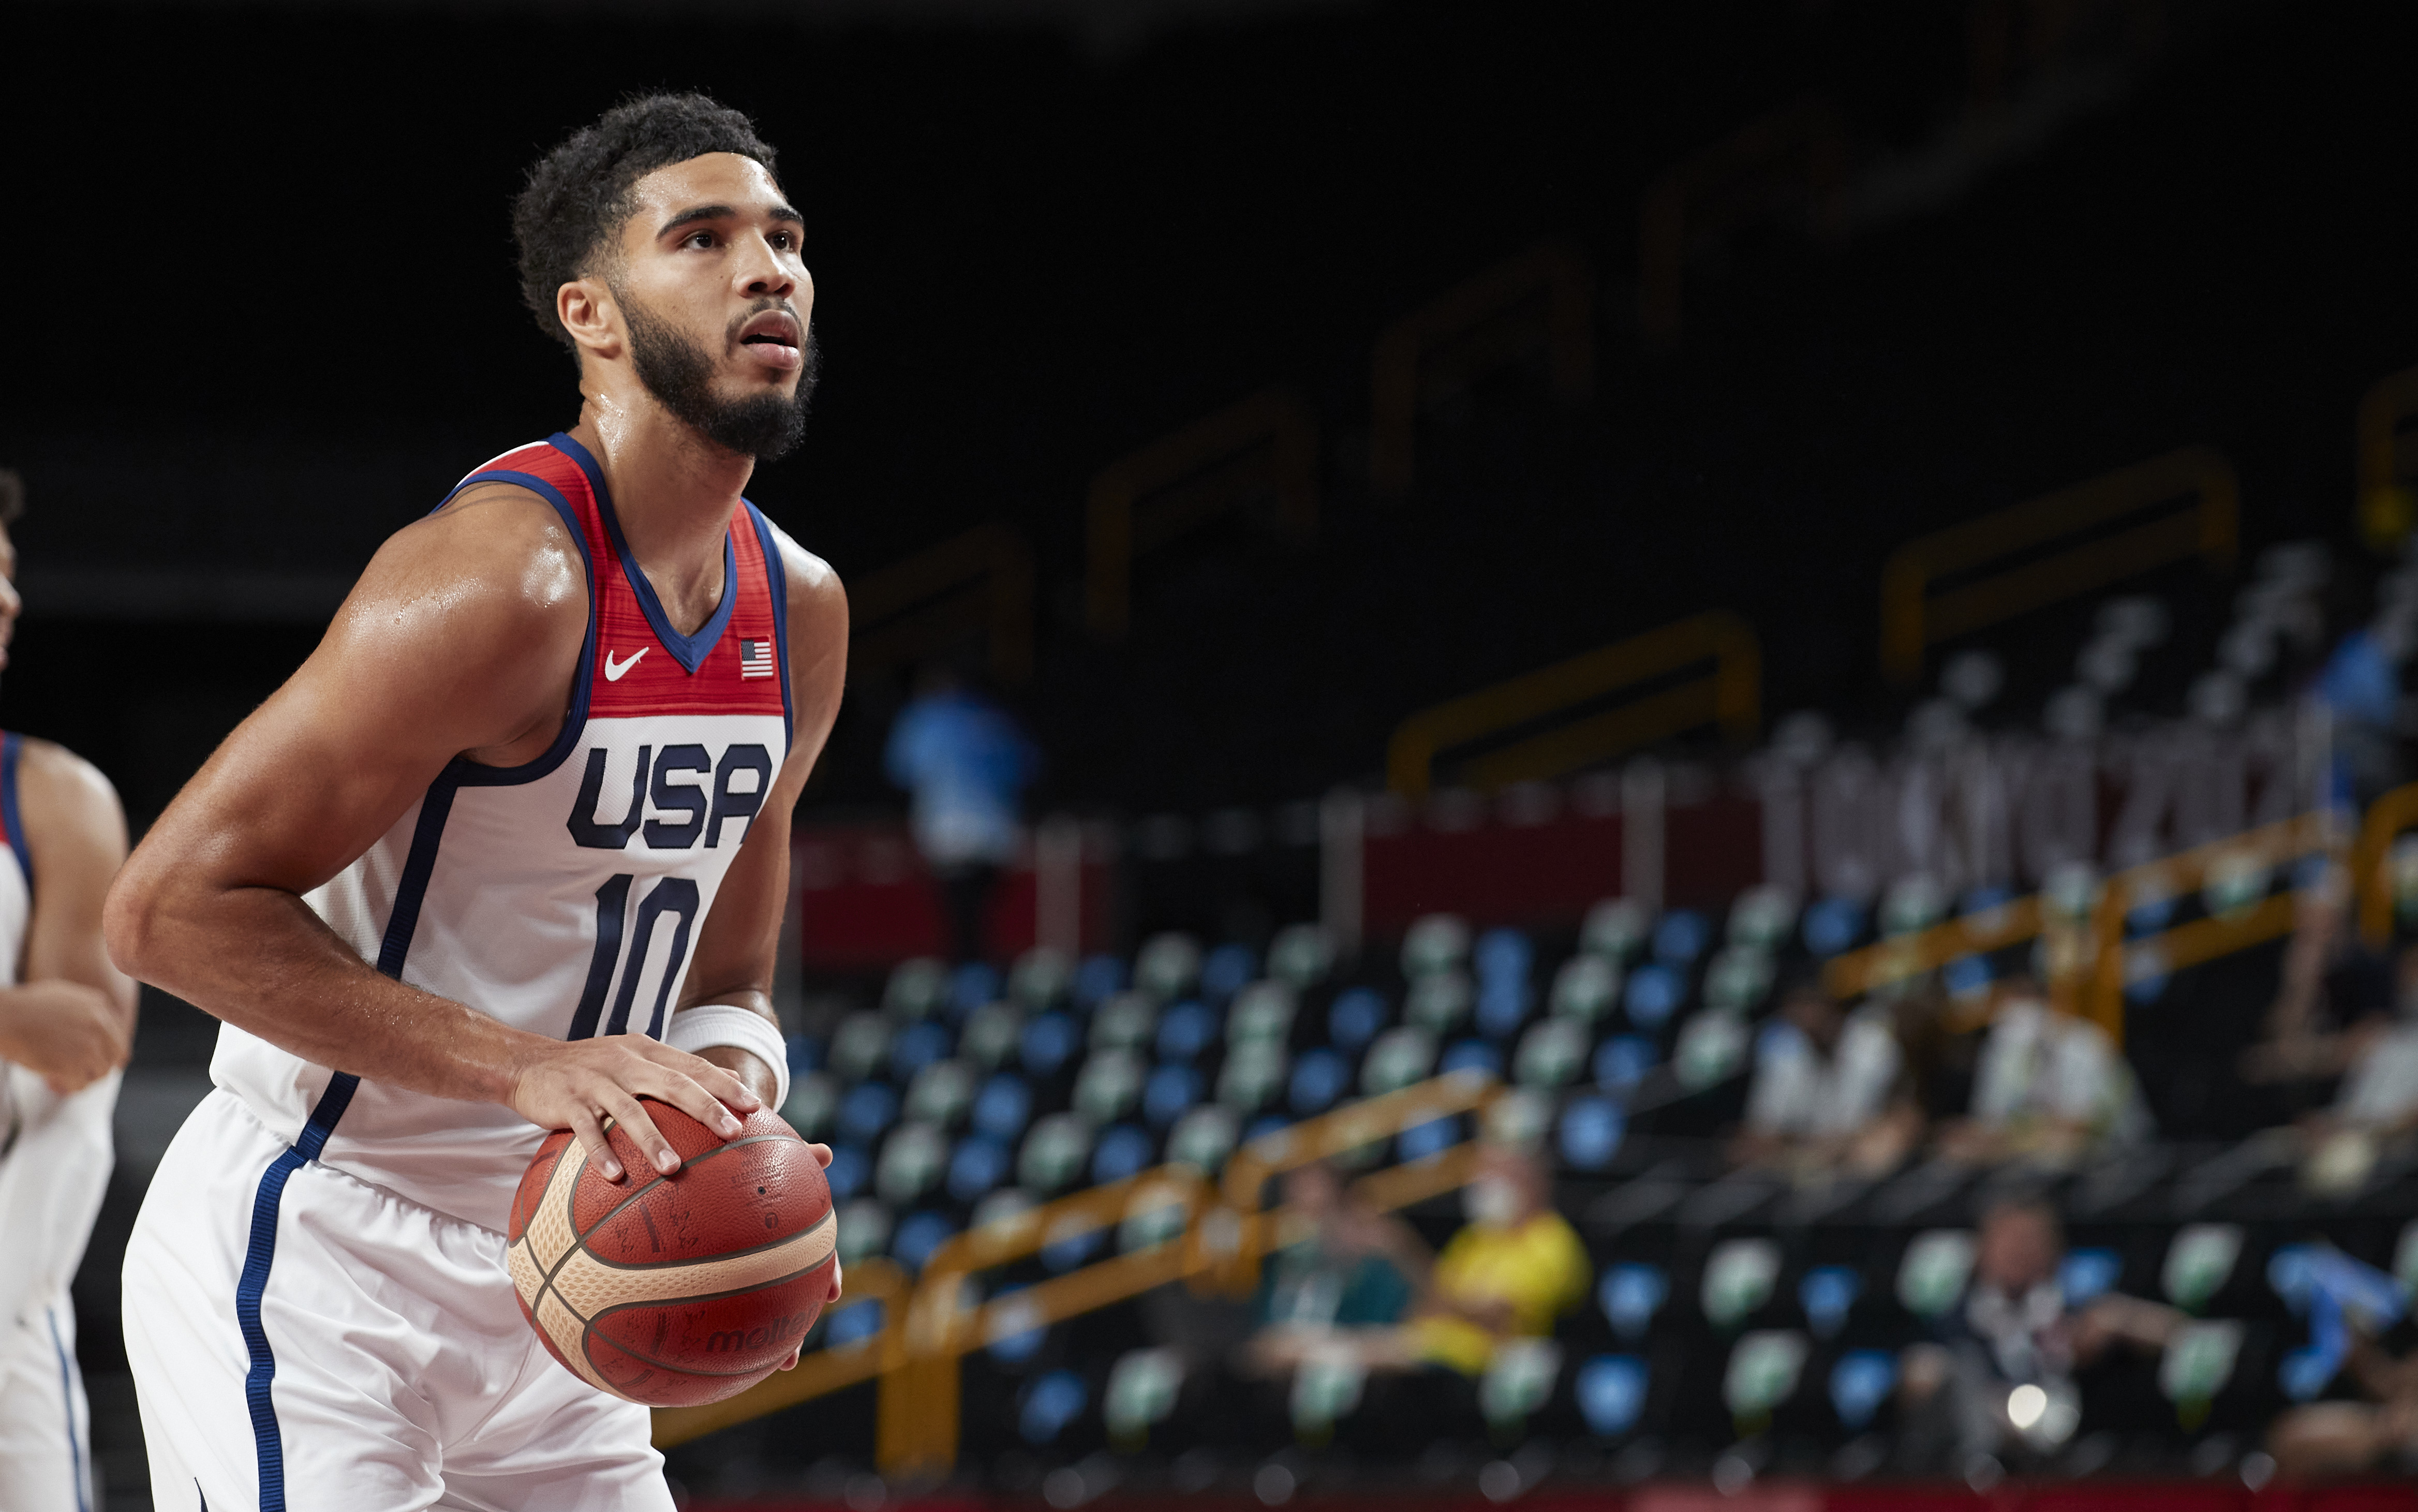 United States v Islamic Republic of Iran - Basketball - Preliminary Round - Group A - Olympics - Day 5